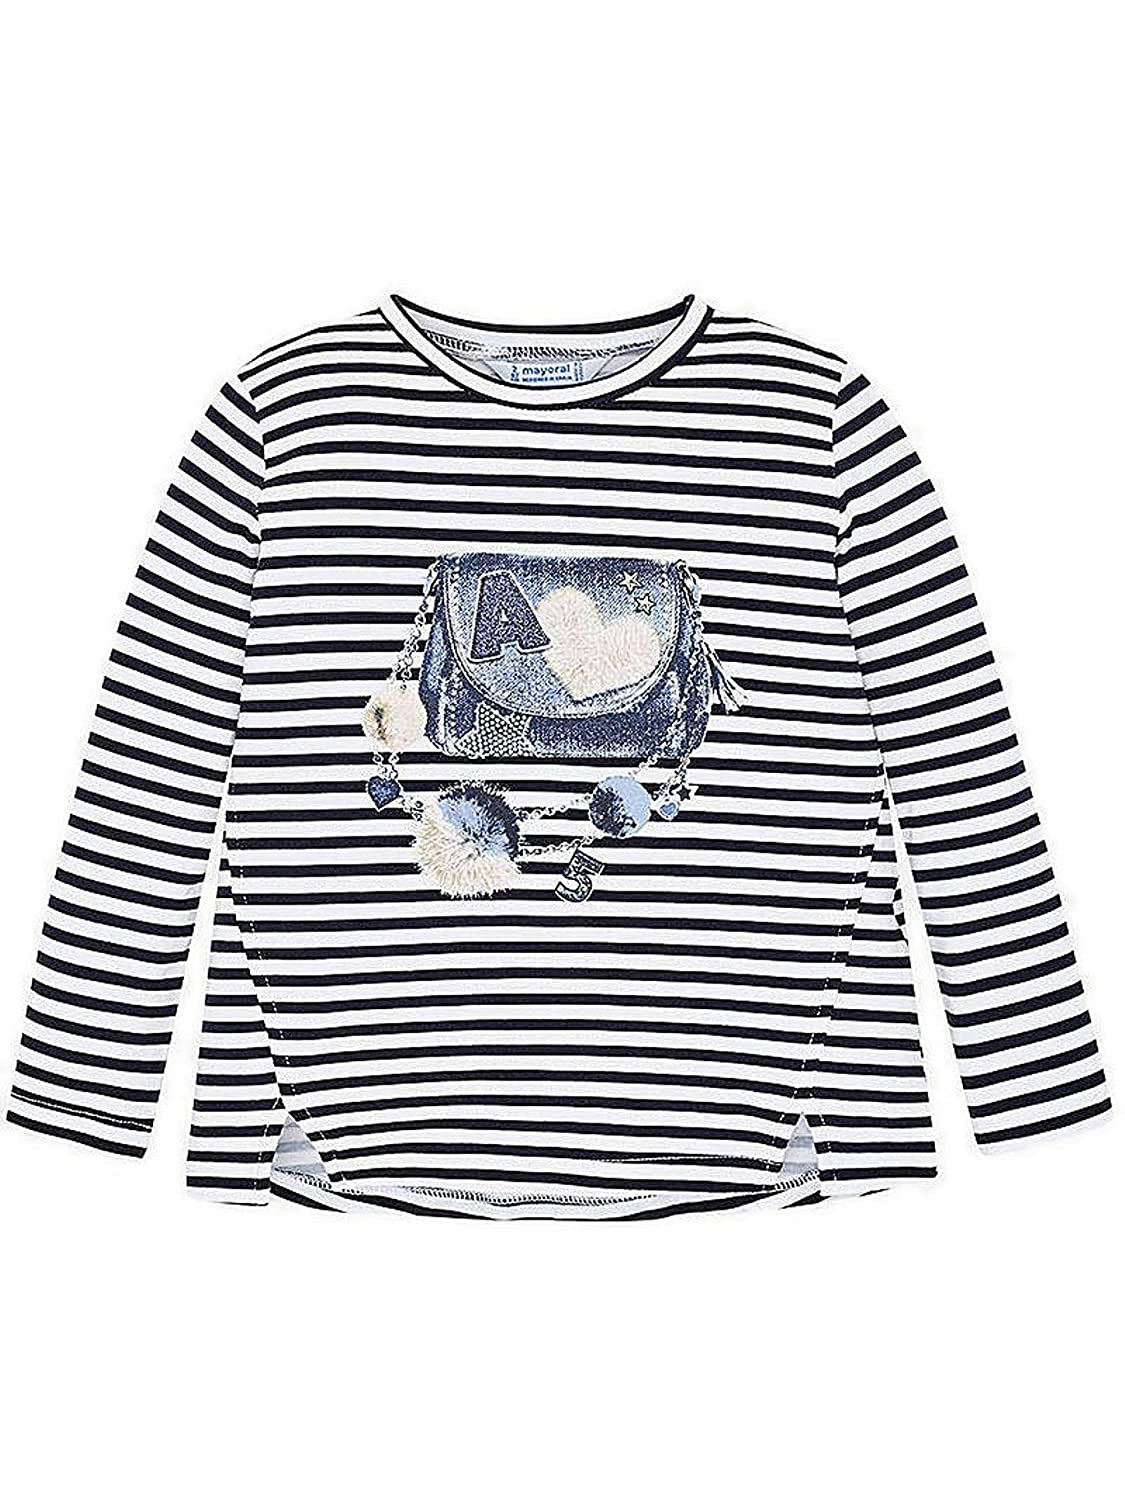 4014 L//s Printed t-Shirt for Girls Mayoral Navy